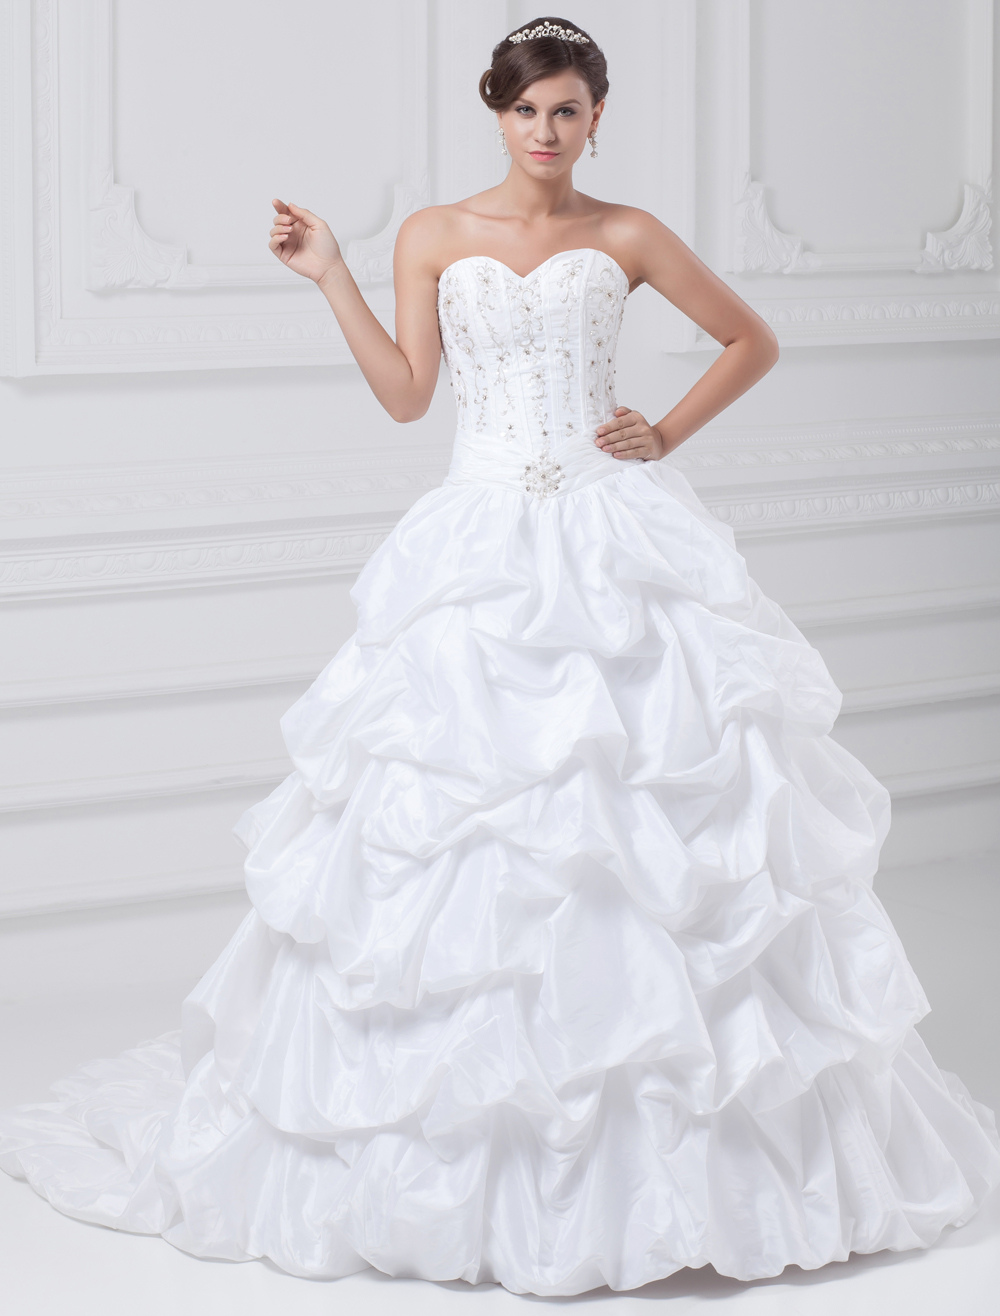 White Ball Gown Embroidered Taffeta Wedding Dress For Bride photo